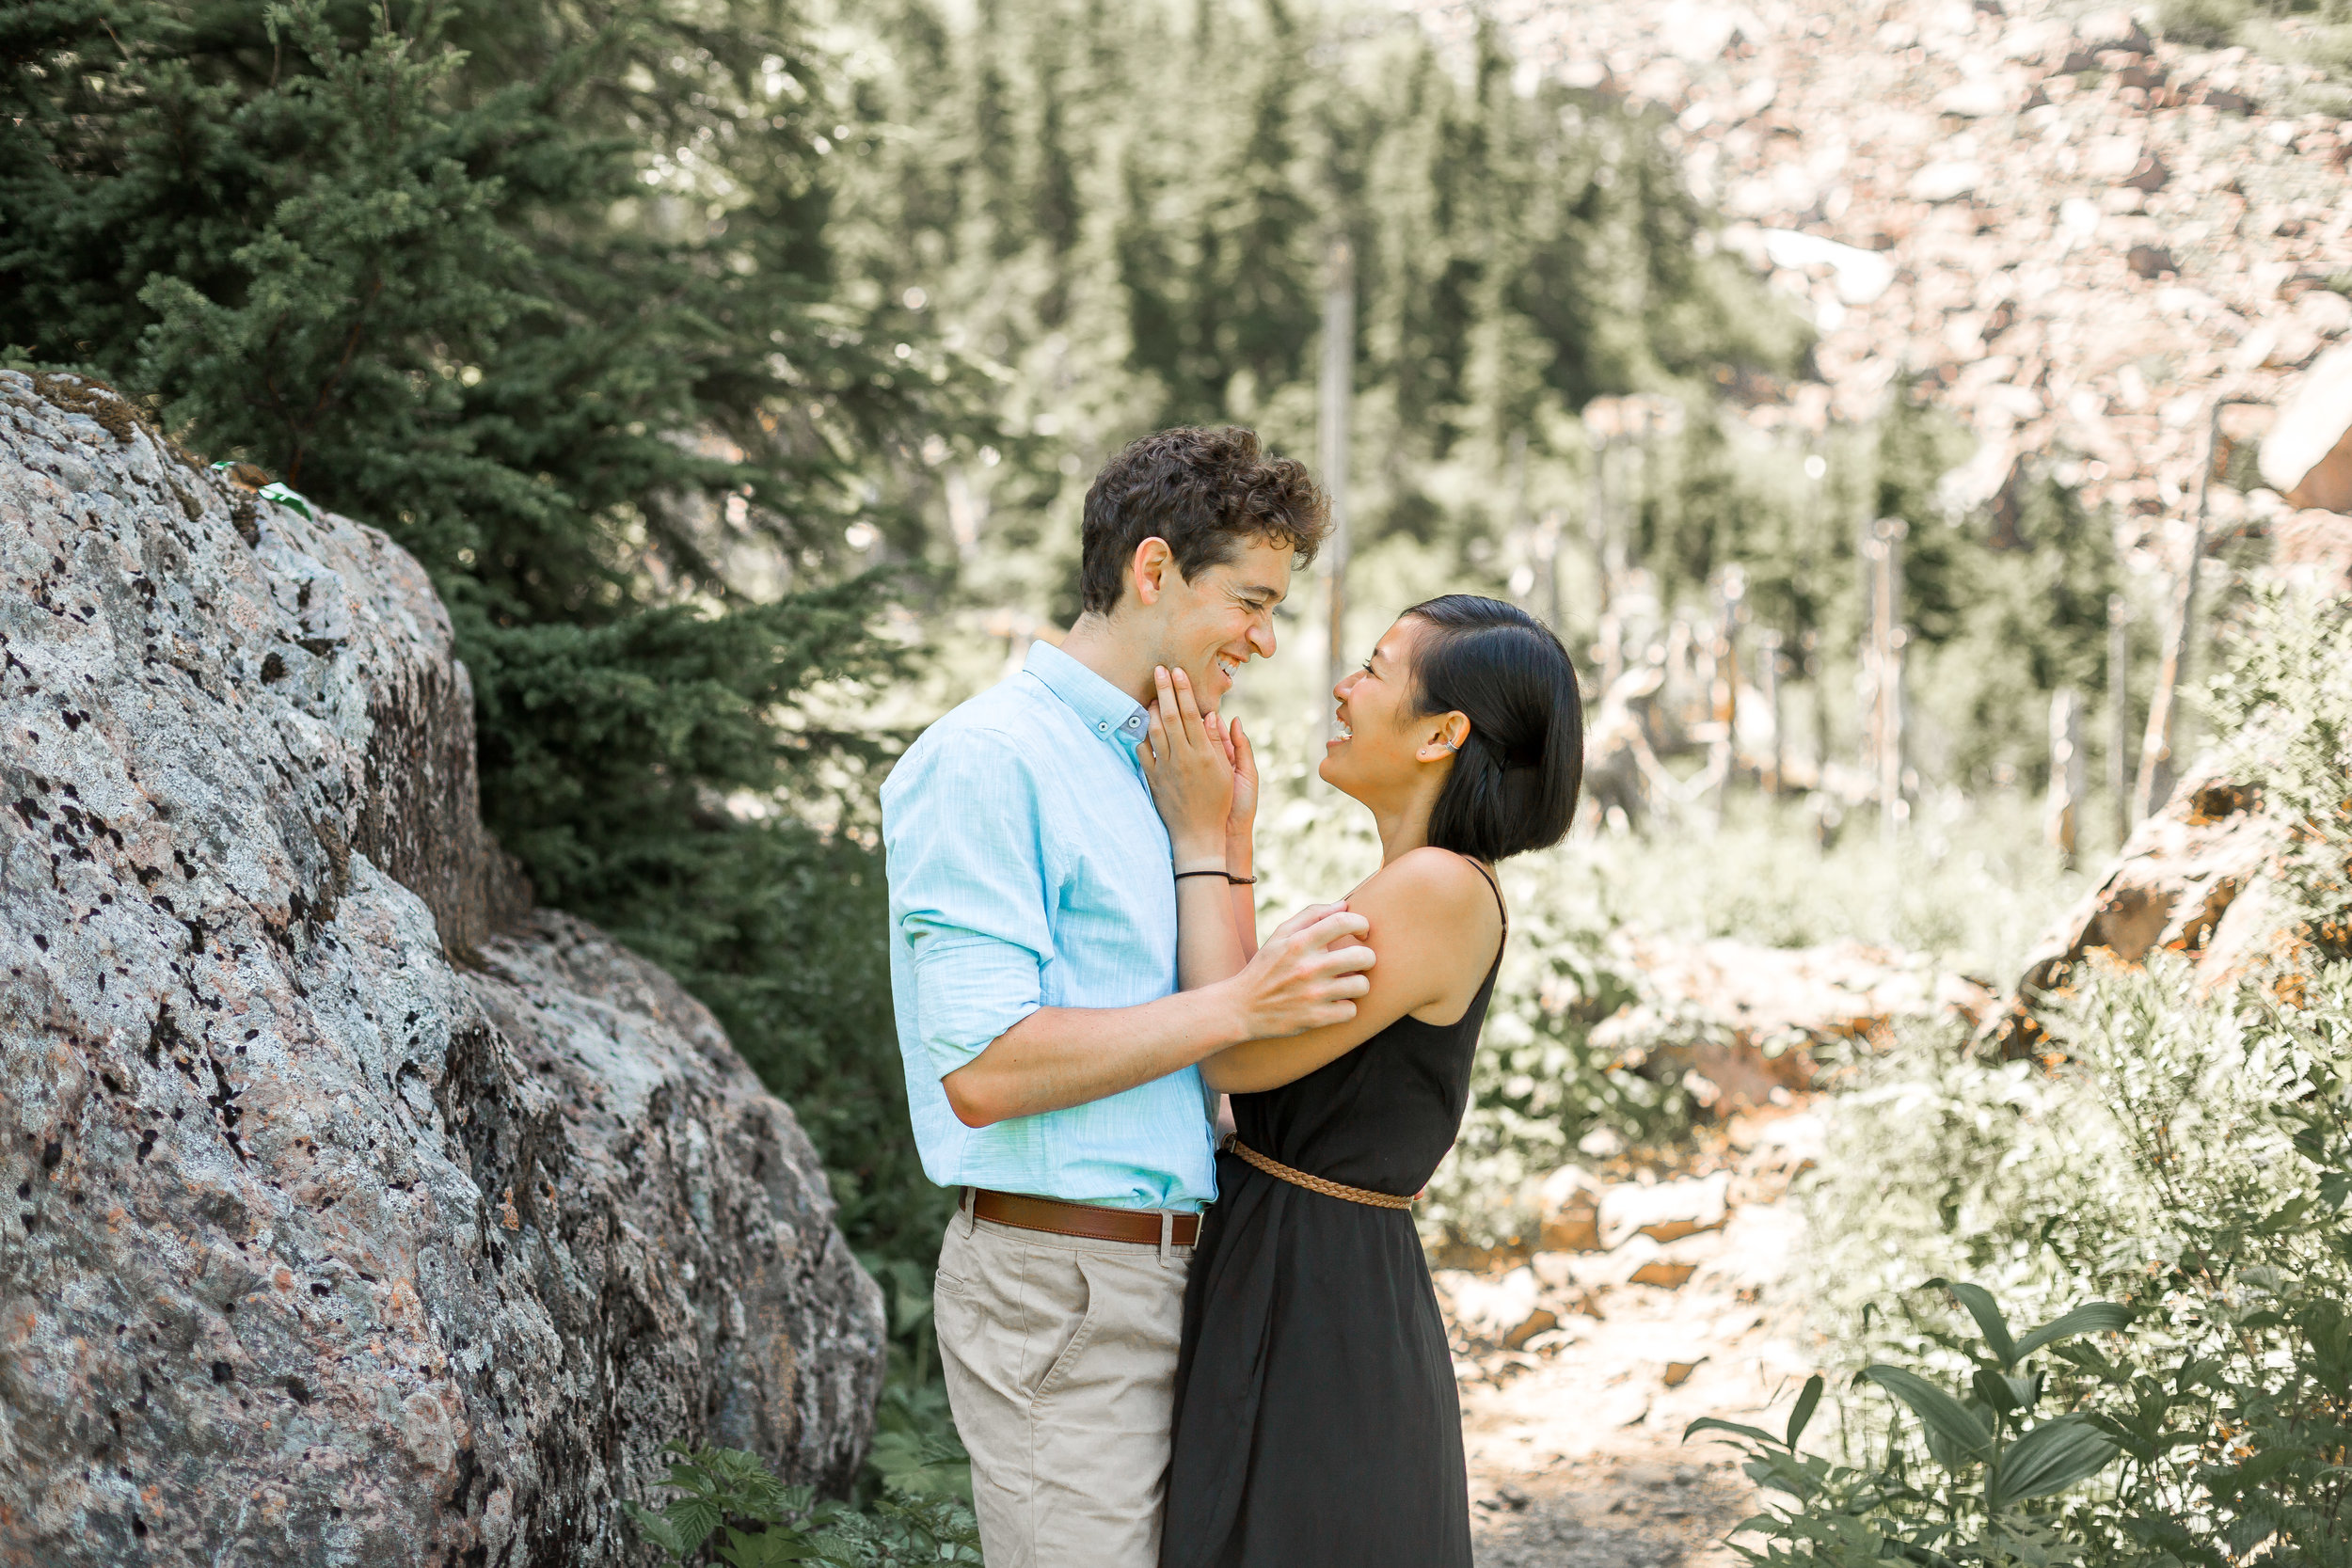 nicole-daacke-photography-hiking-engagement-session-in-snoqualmie-pass-washington-wedding-photographer-seattle-elopement-photography-adventurous-hiking-photos-heather-lake-washington-trails-13.jpg